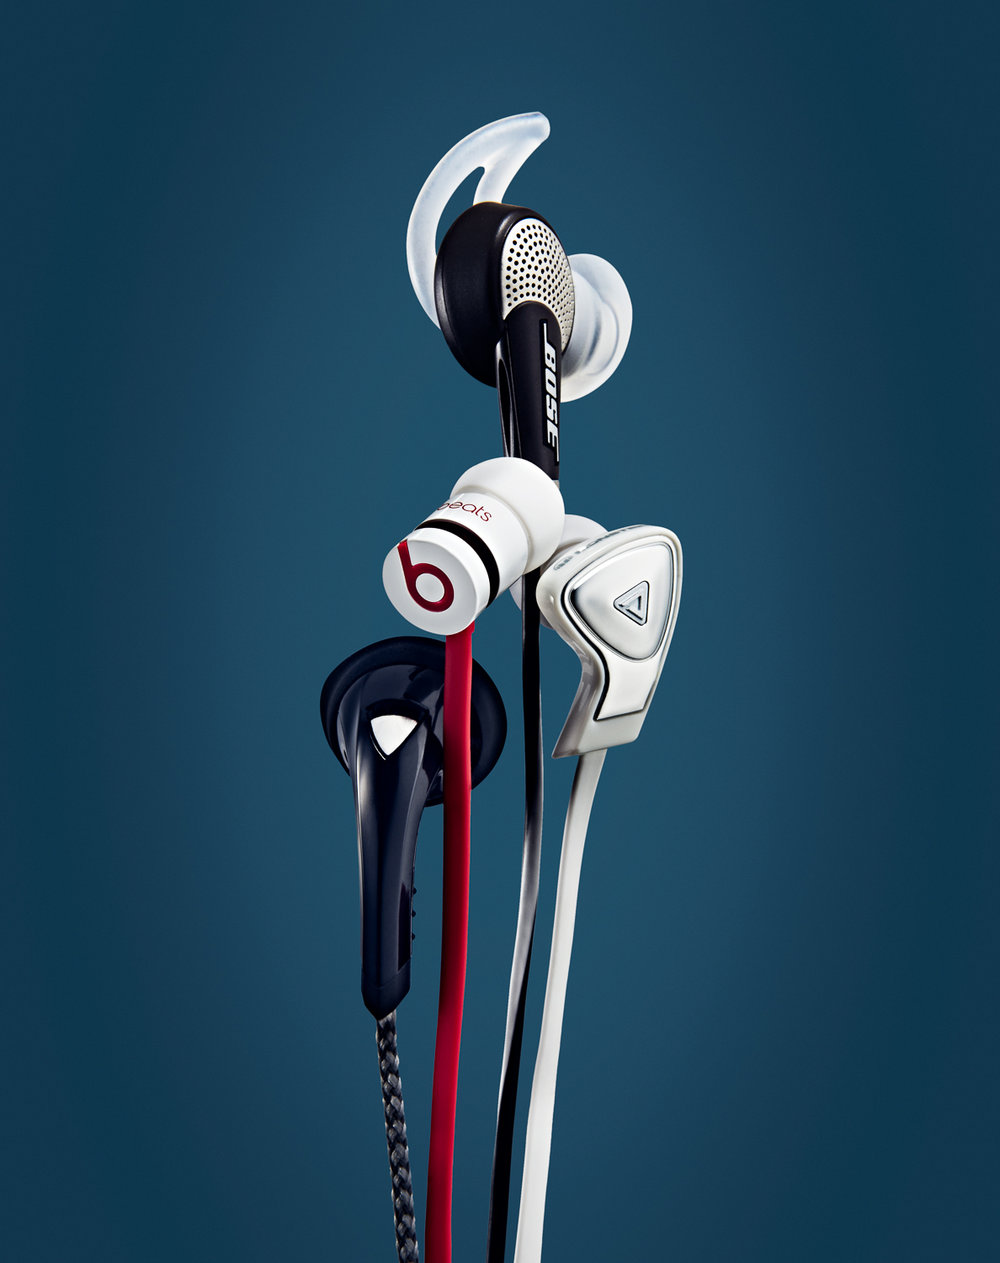 131015 Headphones.jpg